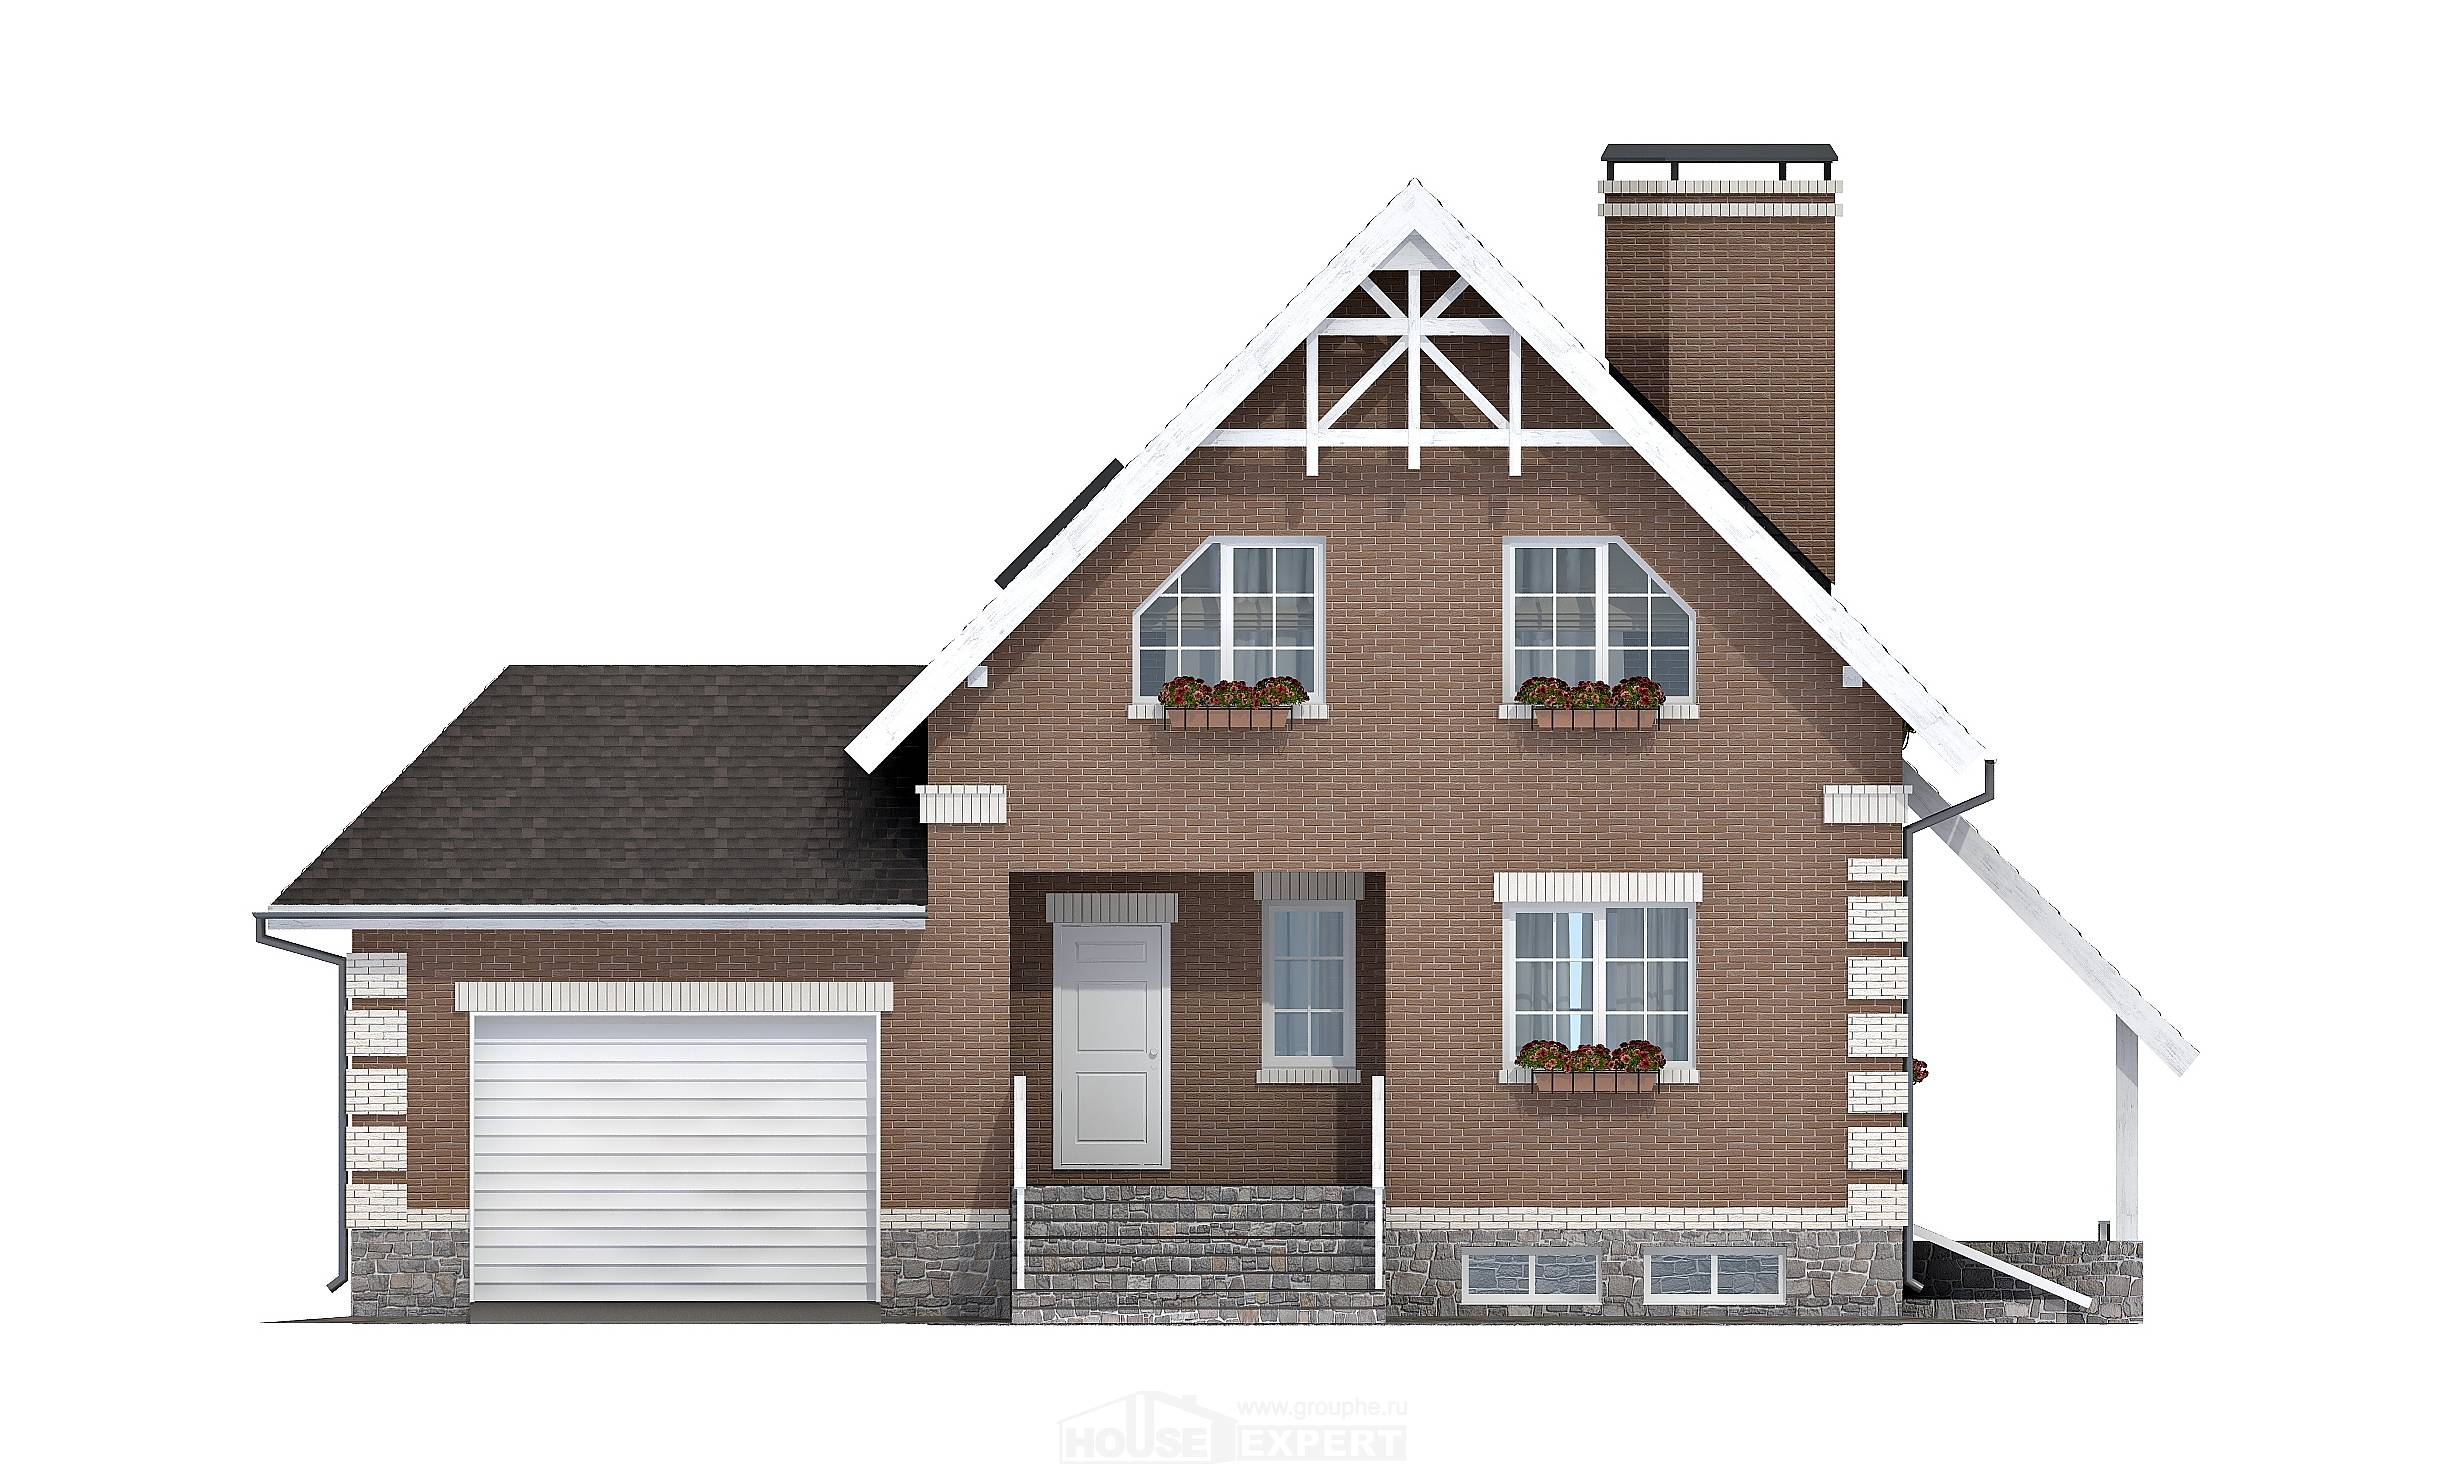 200-009-L Three Story House Plans with mansard with garage, a simple Plans Free